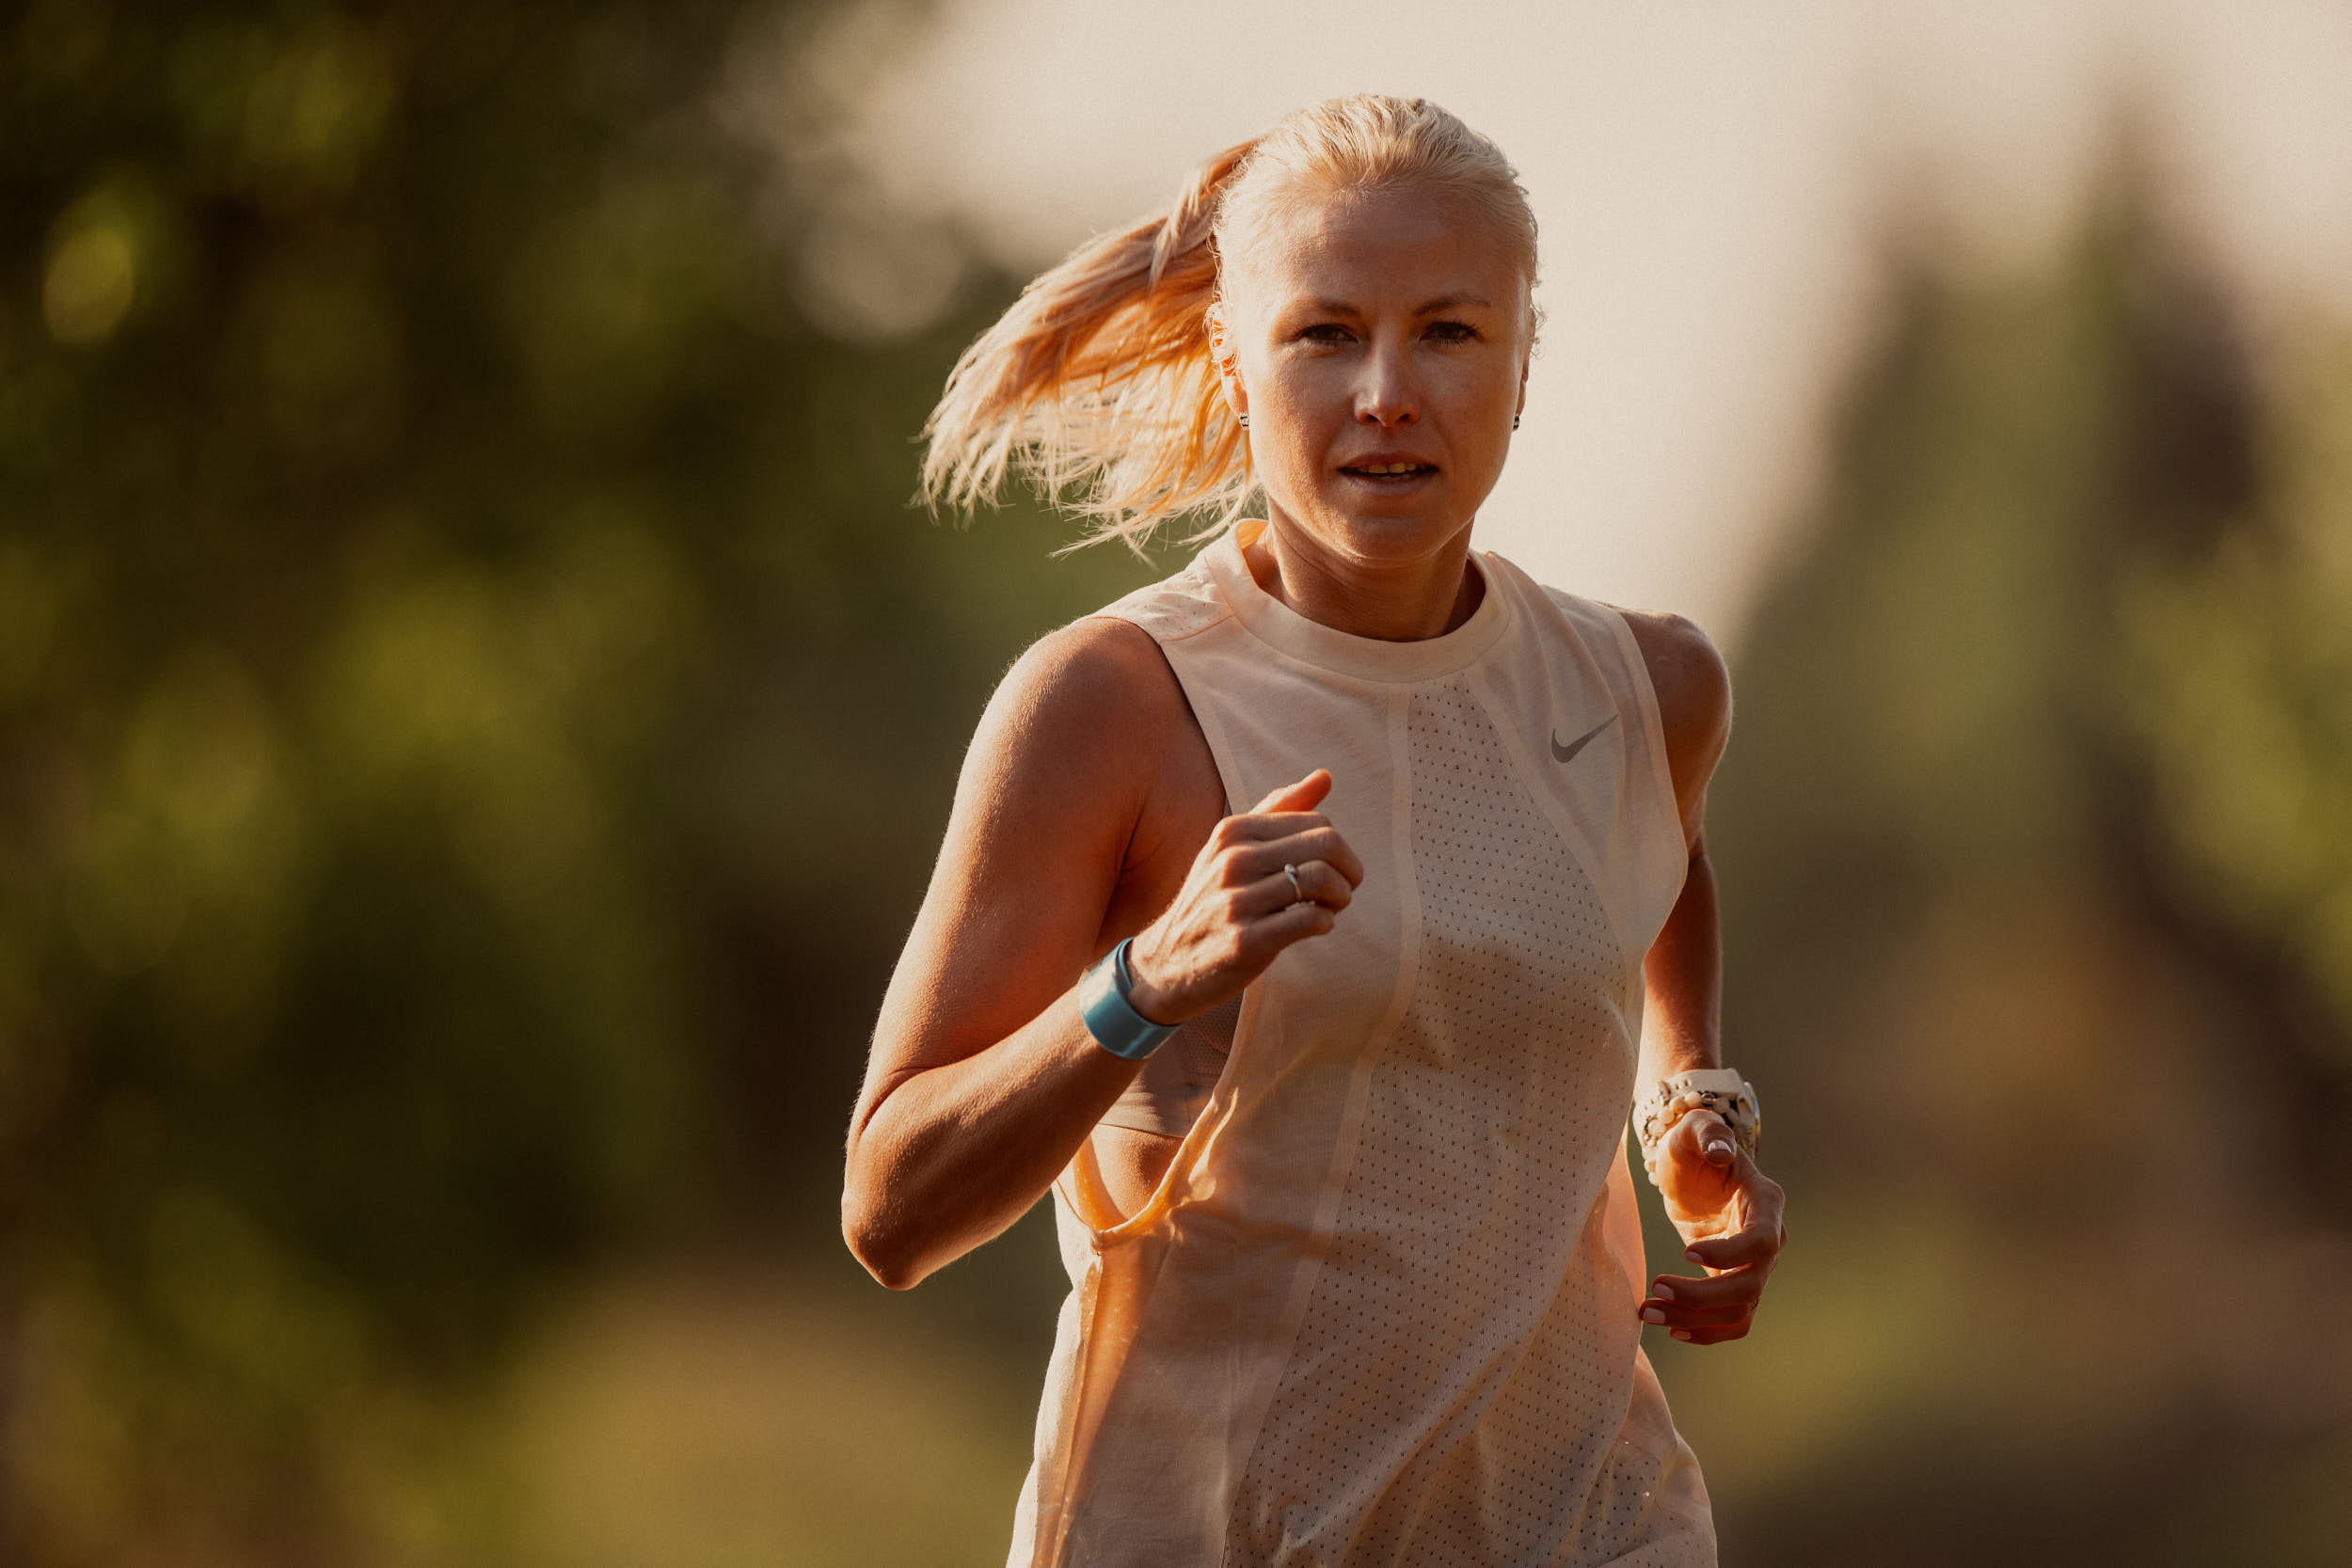 Medium close-up of a female runner in tank top with blurred trees in the background.